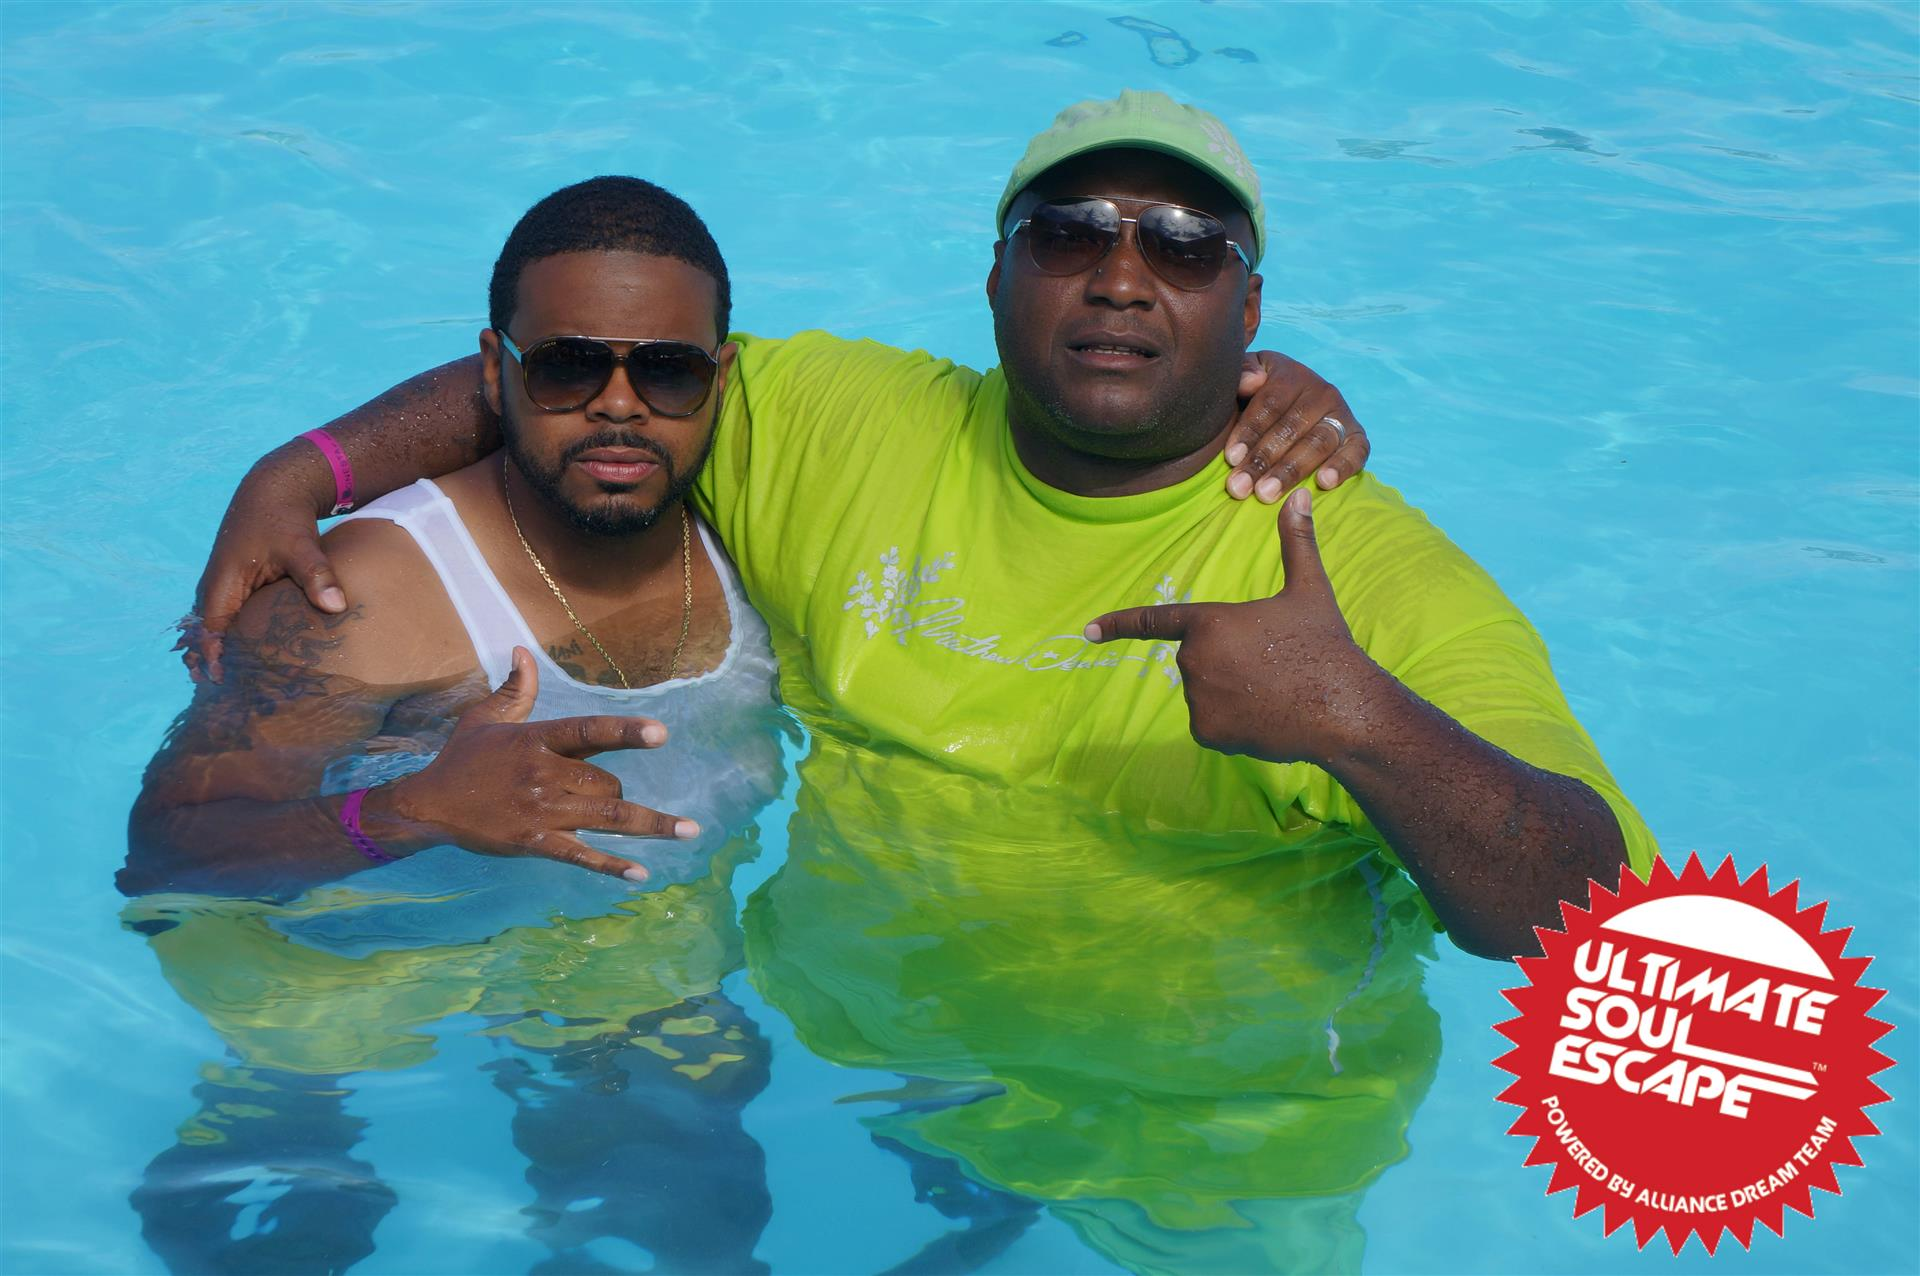 Two guys wearing shirts in a pool